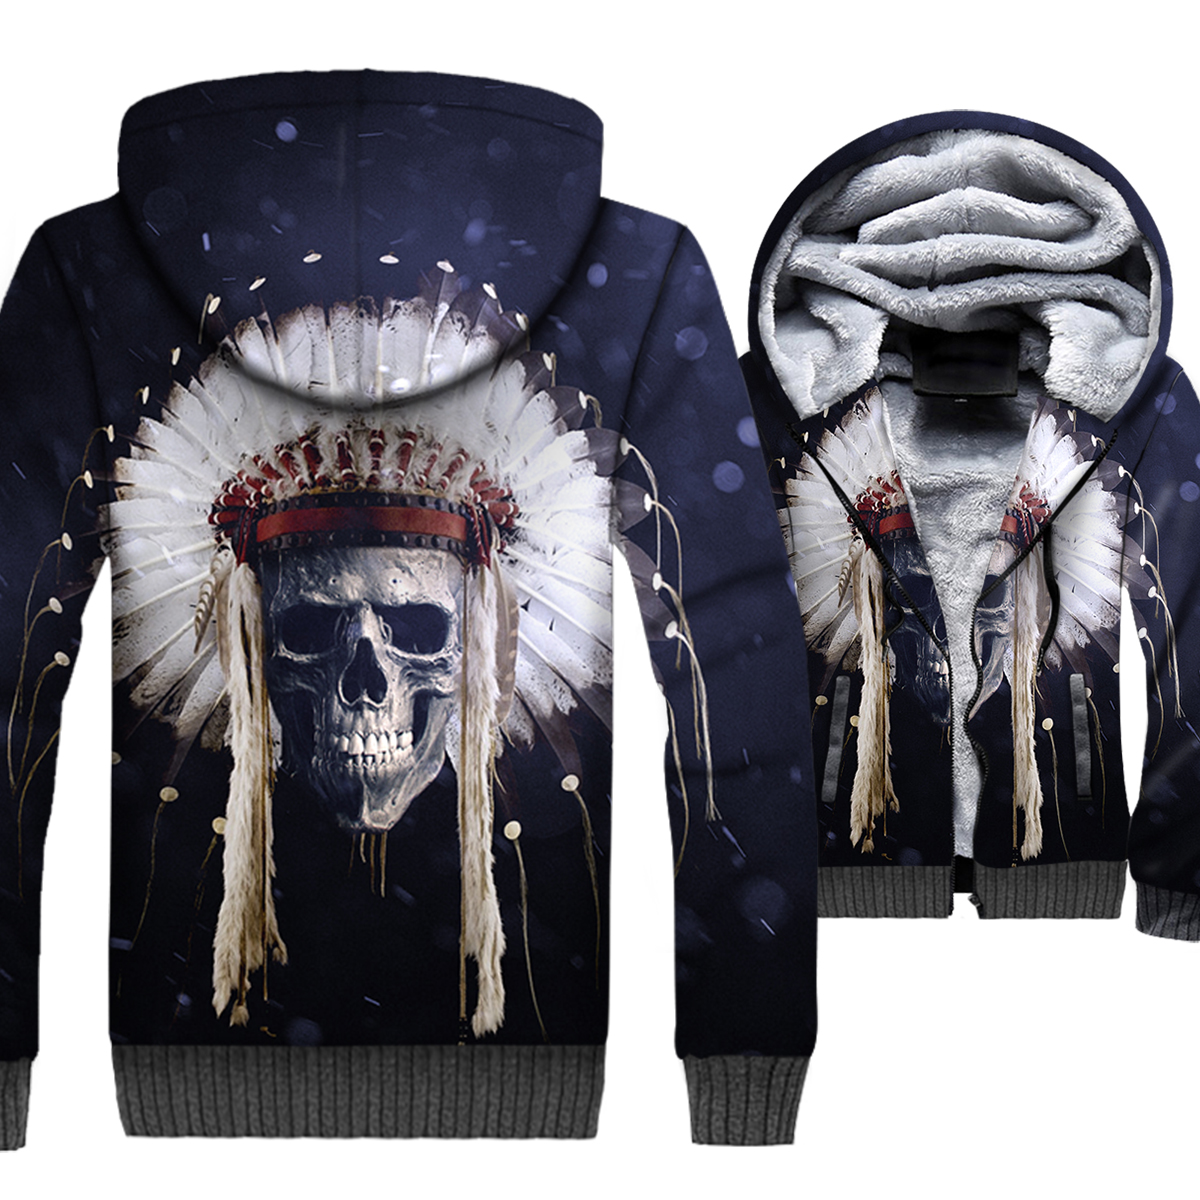 Skull Jacket Men 3D Hoodies Swag Sweatshirt 2018 Winter Thick Fleece Warm Zipper Coat Jacket Hip-Hop Sportswear Brand Clothing